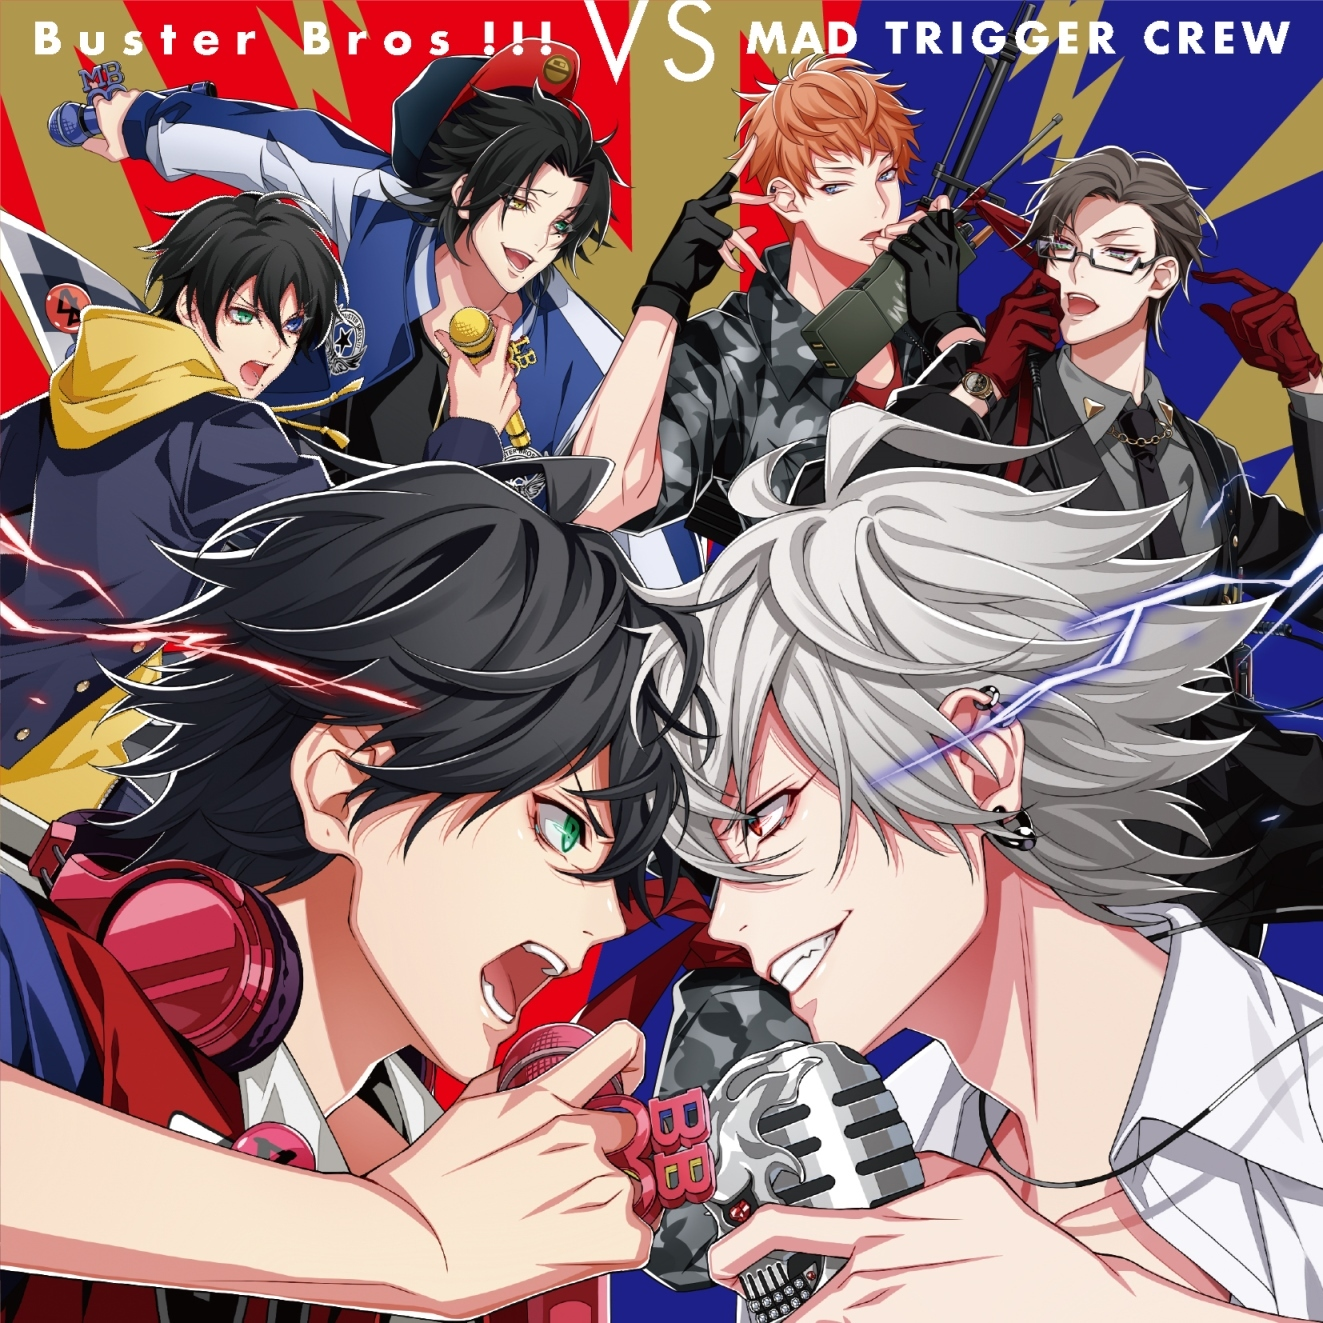 Buster Bros!!!・MAD TRIGGER CREW「Buster Bros!!! VS MAD TRIGGER CREW」 (c)King Record Co., Ltd.